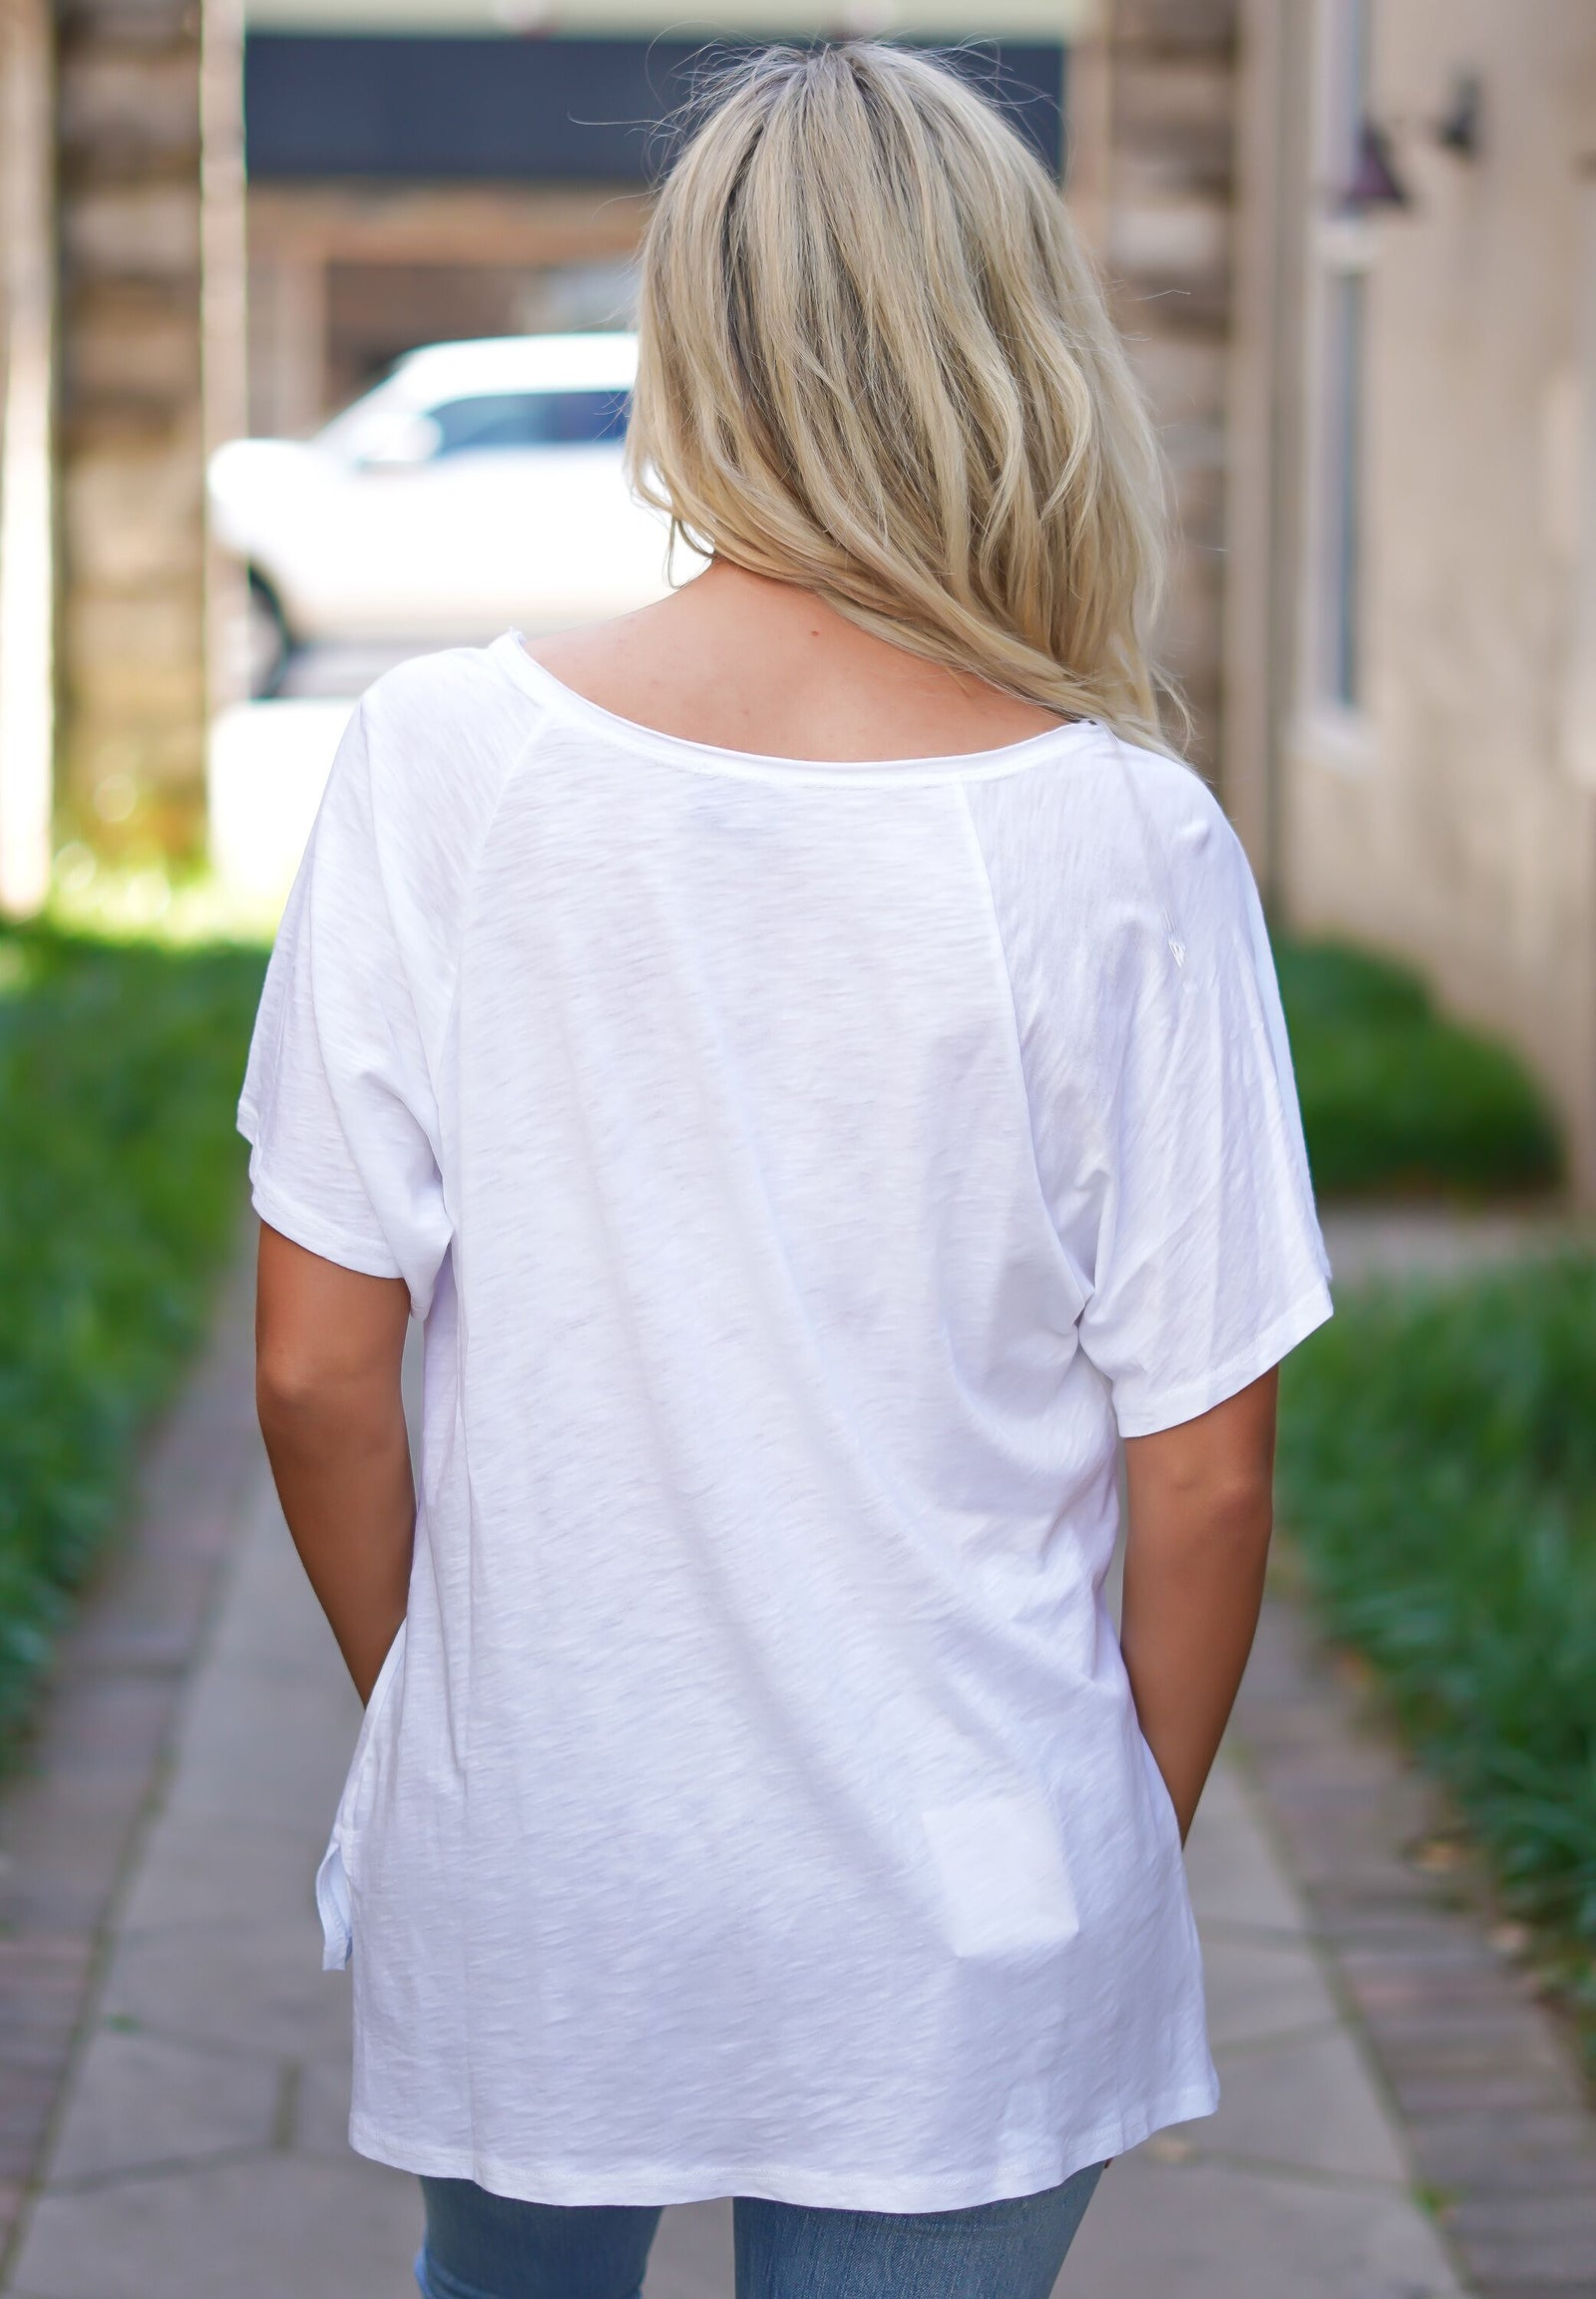 Plain White Pocket Tee - White